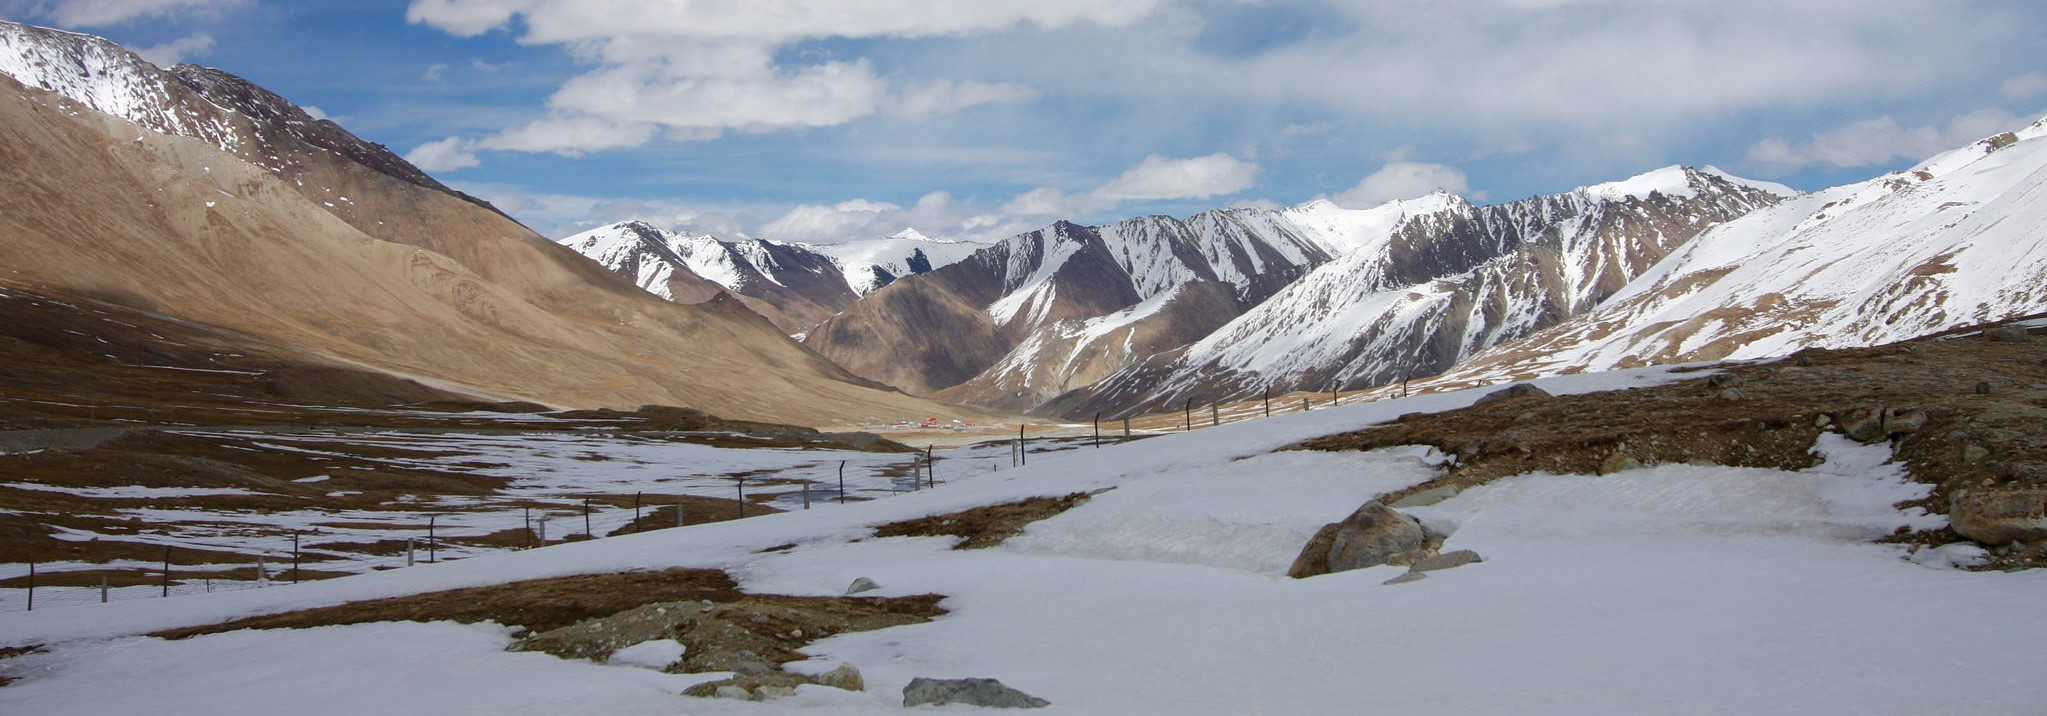 Near Khunjerab Pass, on the China-Pakistan border, 2016 (Photo: Johannes Zielcke/Flickr)